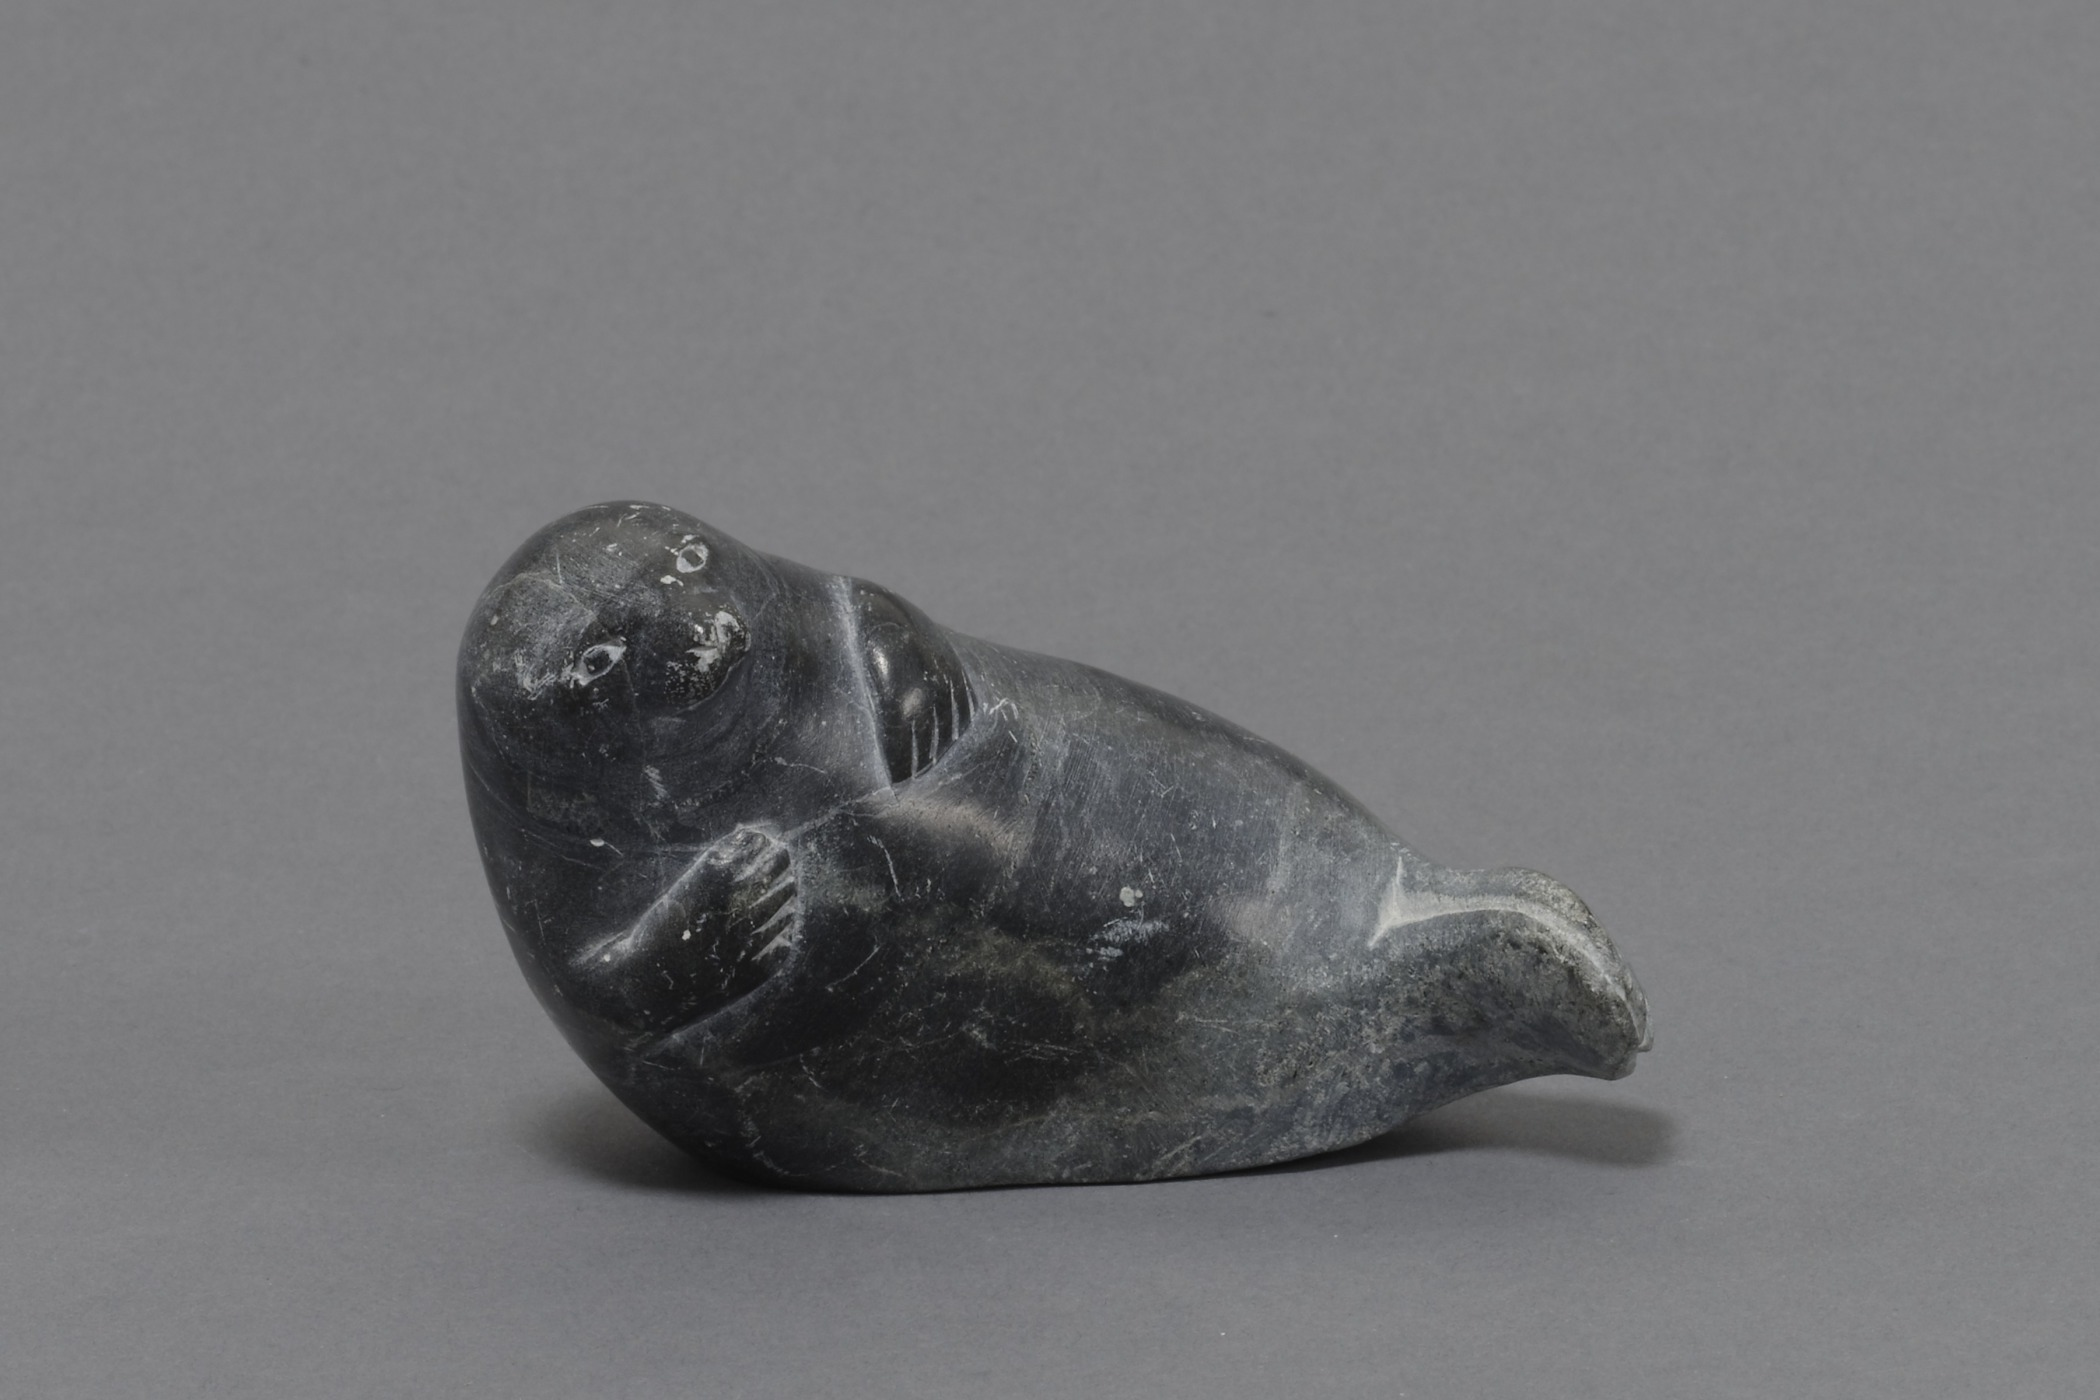 Iñupiaq, seal drag with a carved and engraved handle depicting a seal, collected 1905. Ivory and rawhide, 4 1/8 × 13/16 × 9/16 in. Hood Museum of Art, Dartmouth College: Bequest of Frank C. and Clara G. Churchill; 46.17.9651.